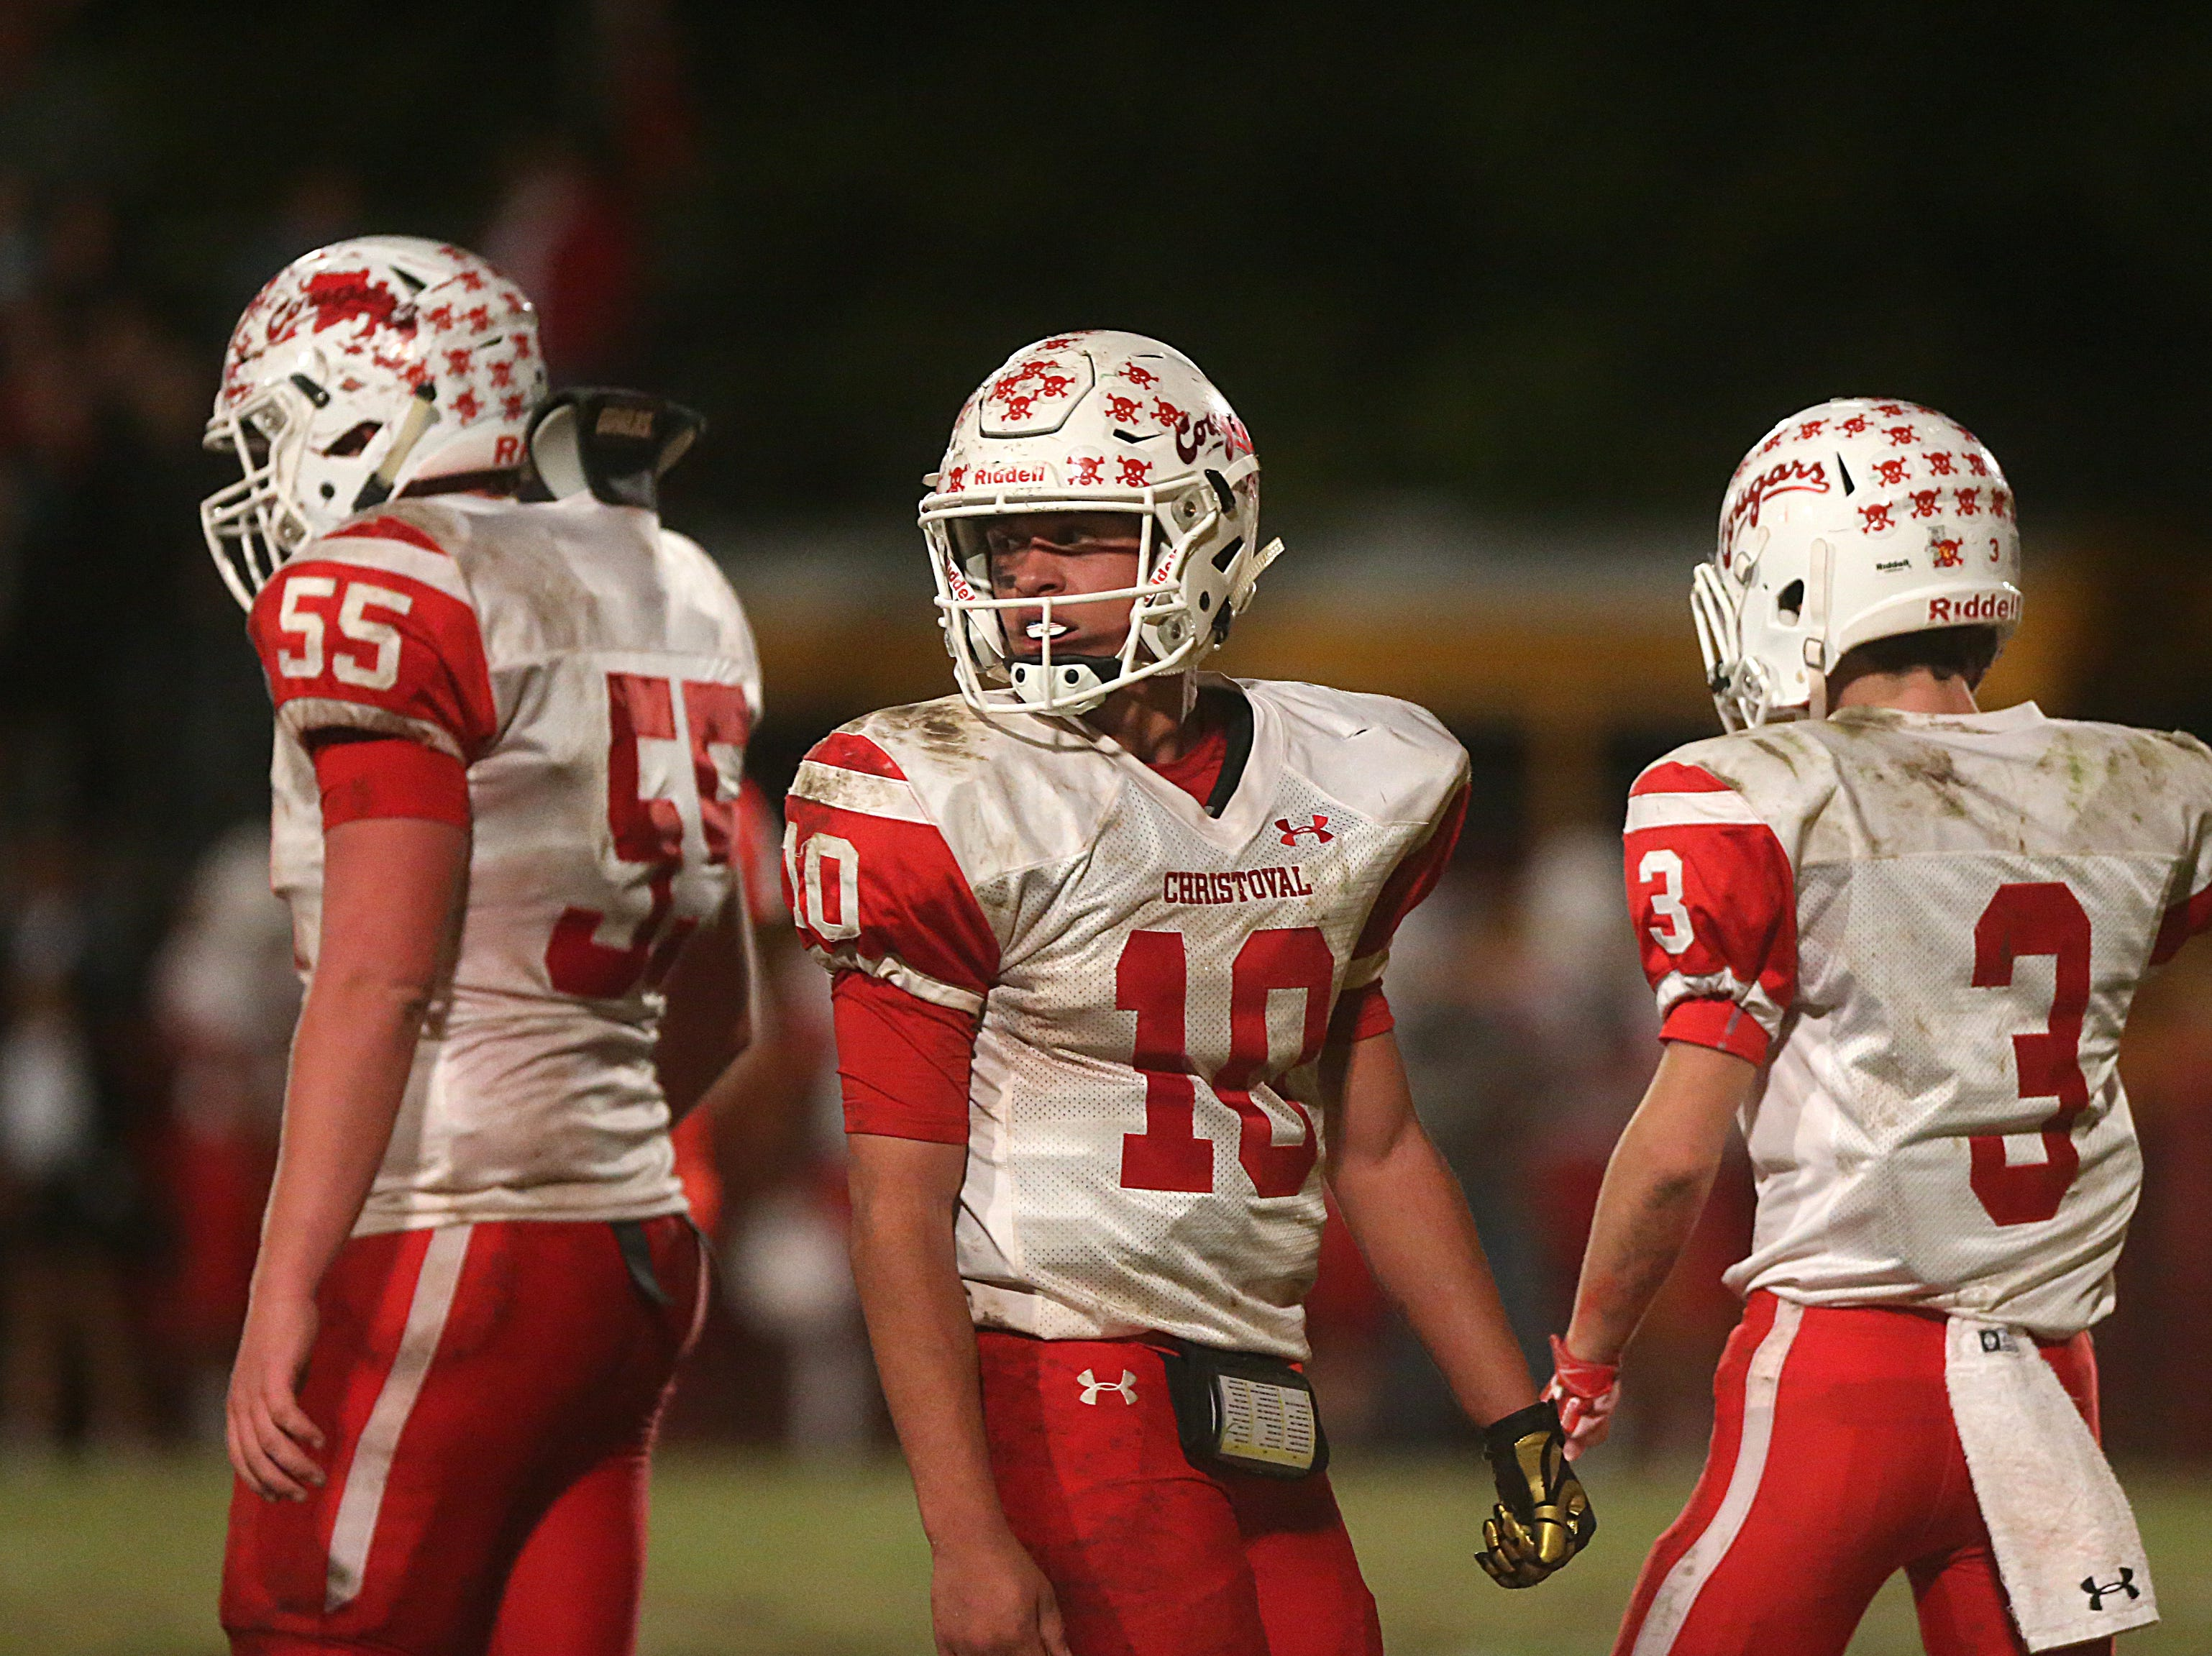 Christoval's Brayden Wilcox (#10), Westen McAllister (#55) and Clayton Edmiston (#3) regroup Friday, Nov. 2, 2018 during their game against Miles.